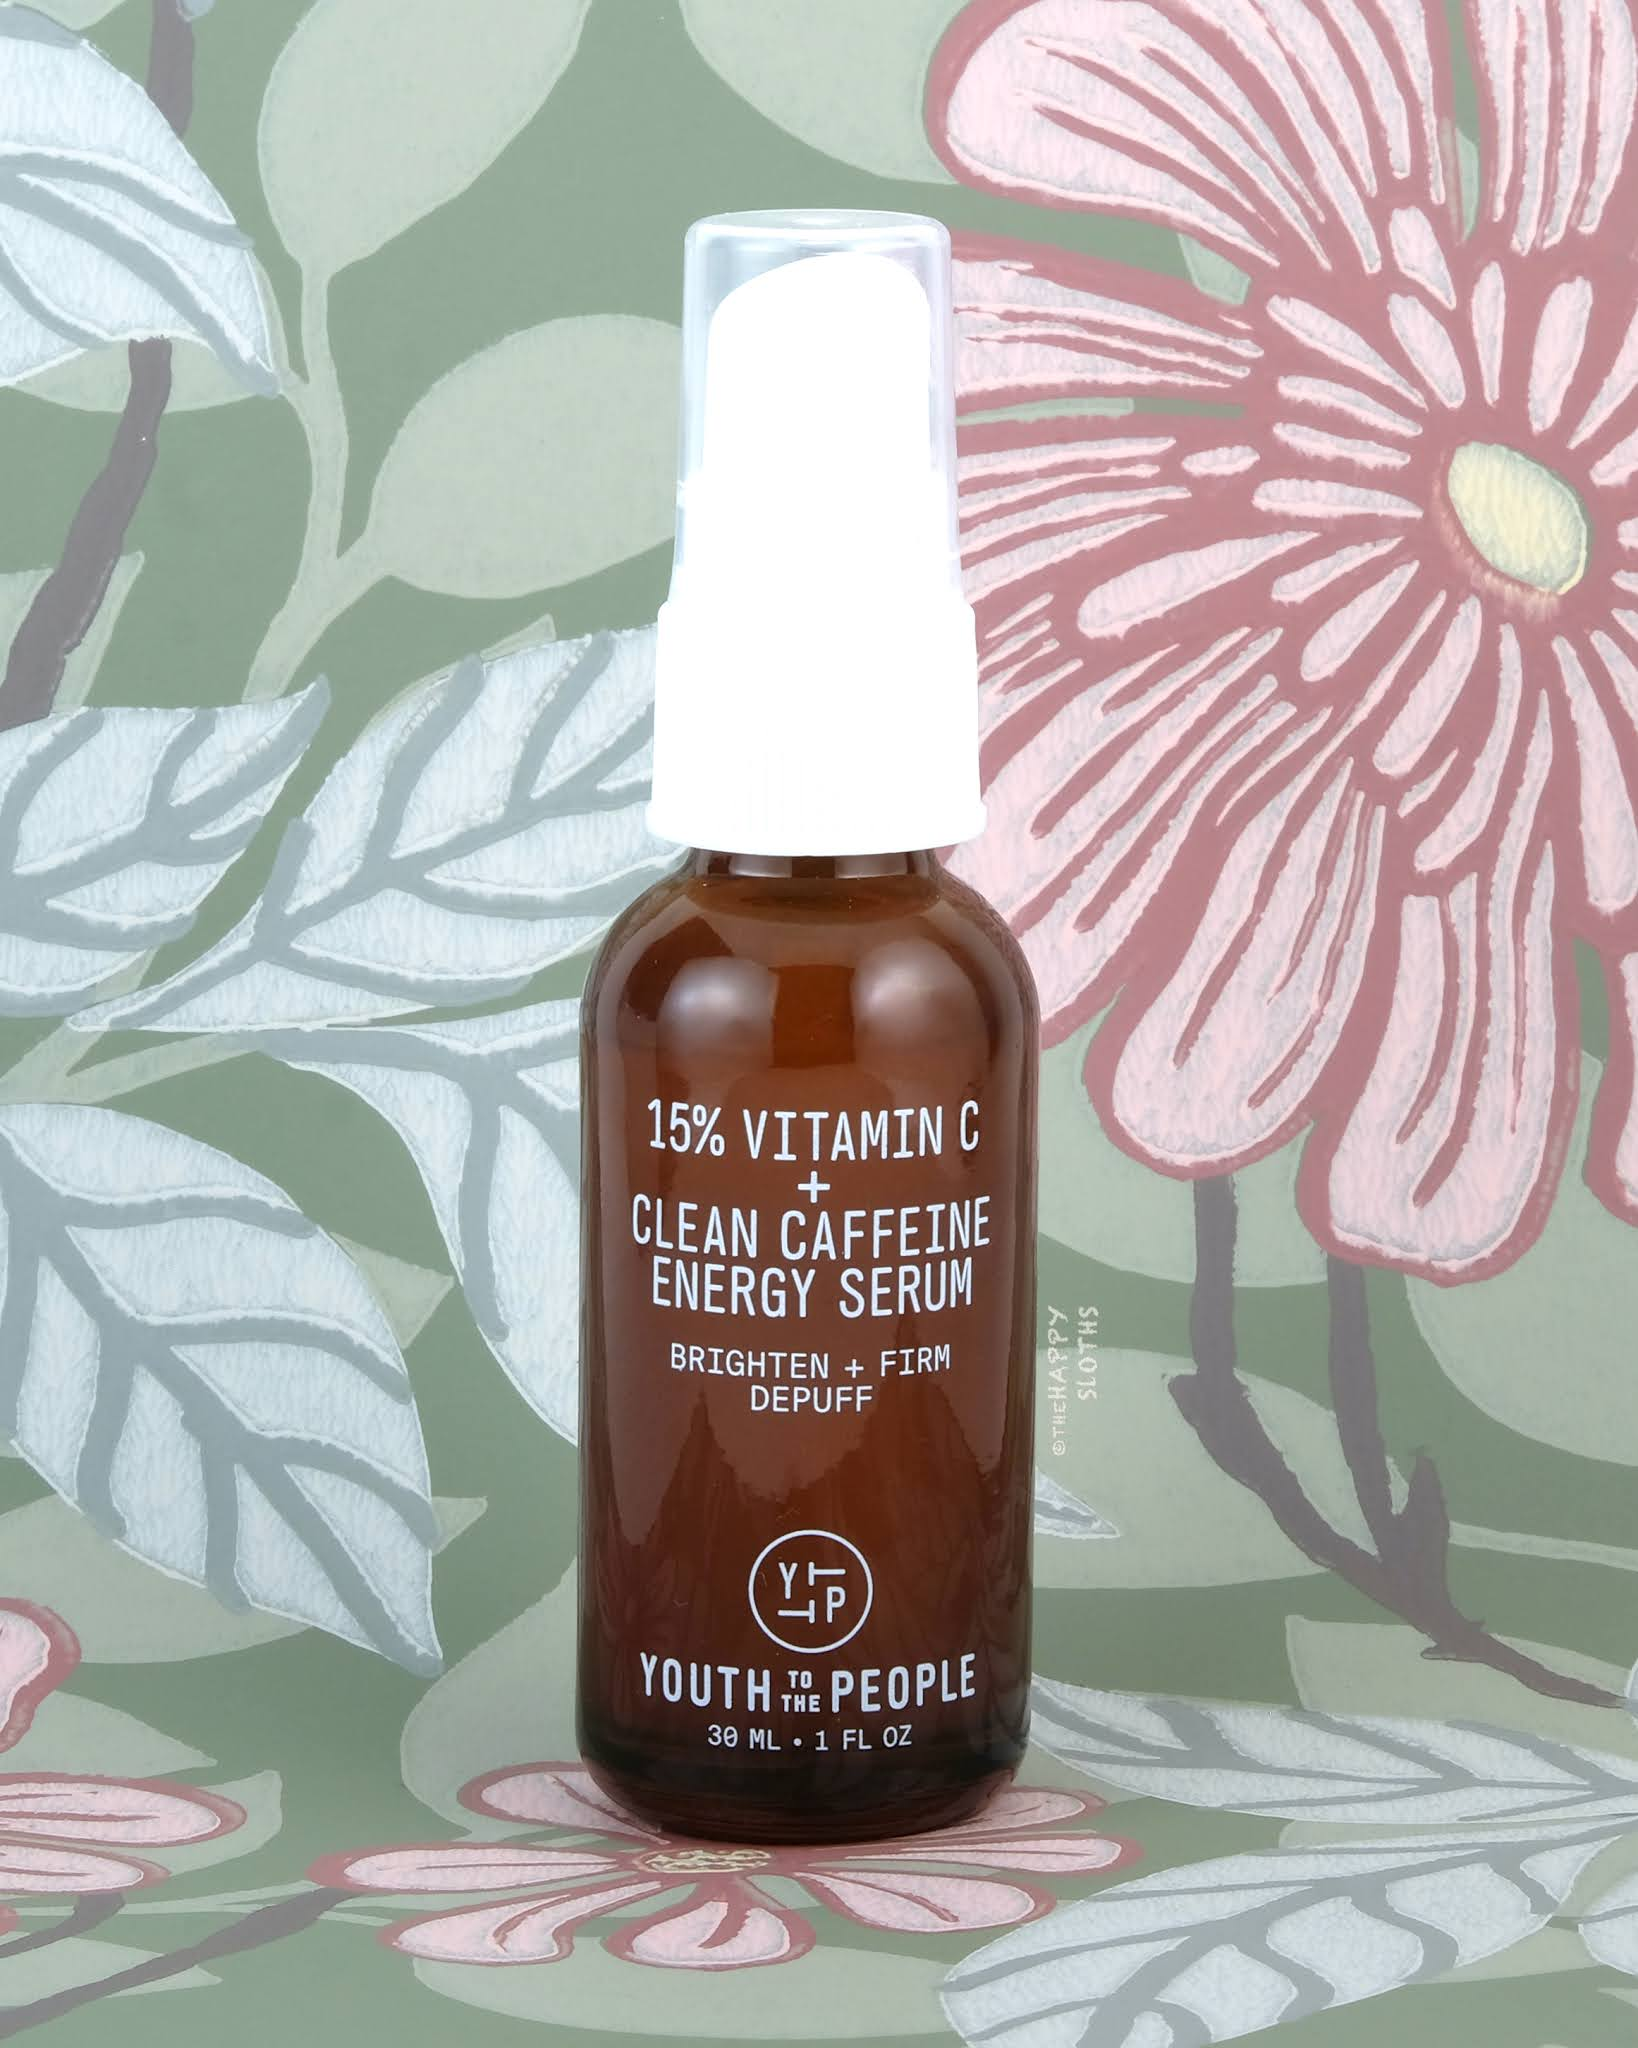 Youth to The People | 15% Vitamin C + Clean Caffeine Energy Serum: Review